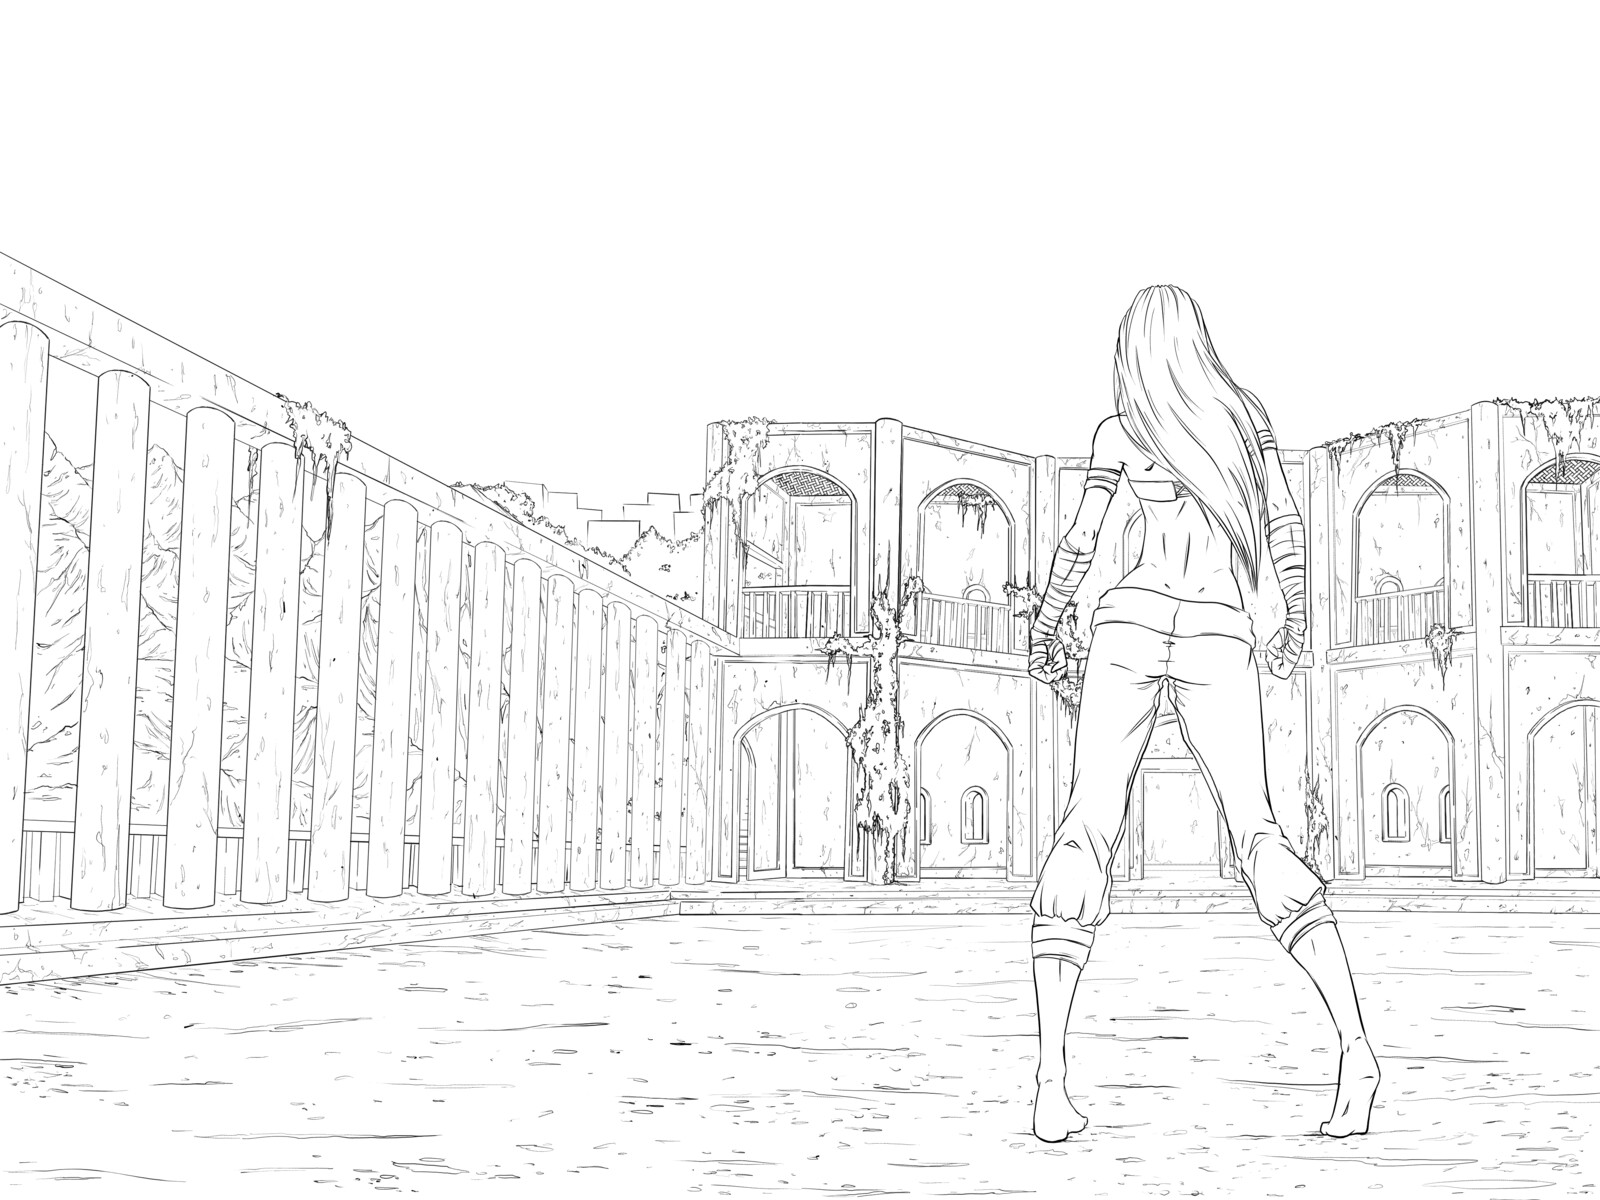 Issue 2 wrap around cover - Line art